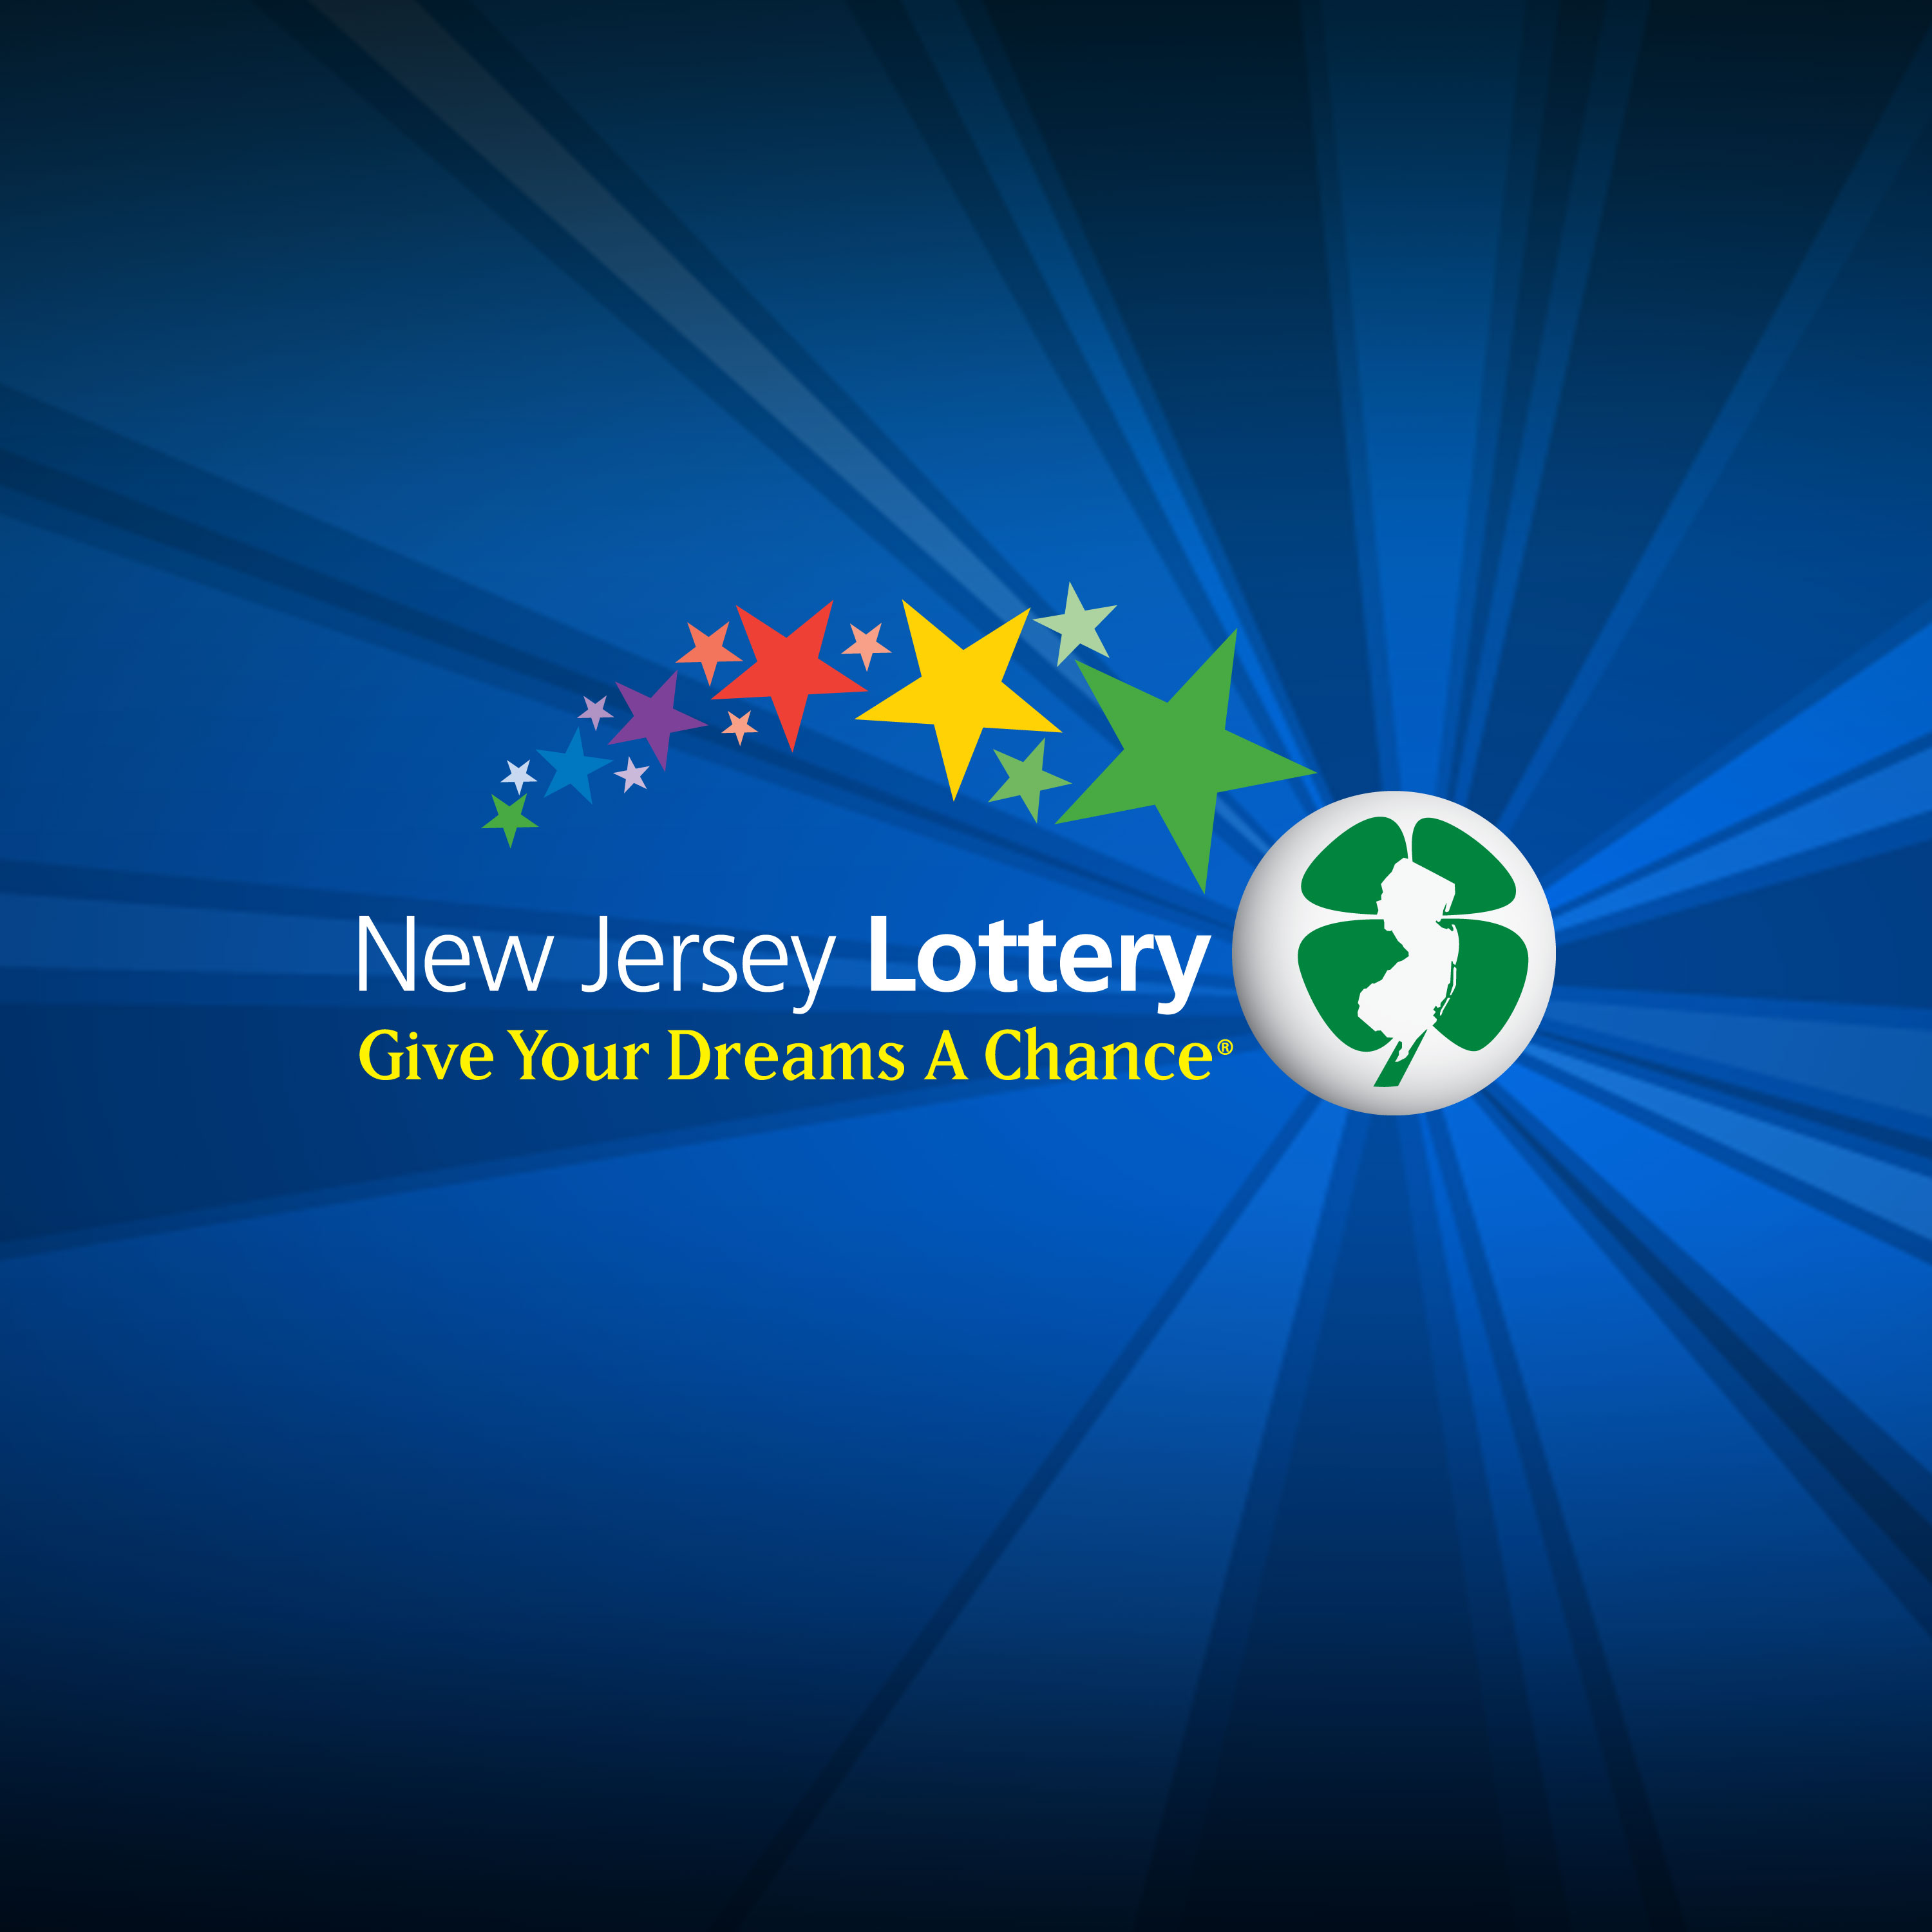 NJ Lottery Needed A Pick Me Up & We Delivered Sales